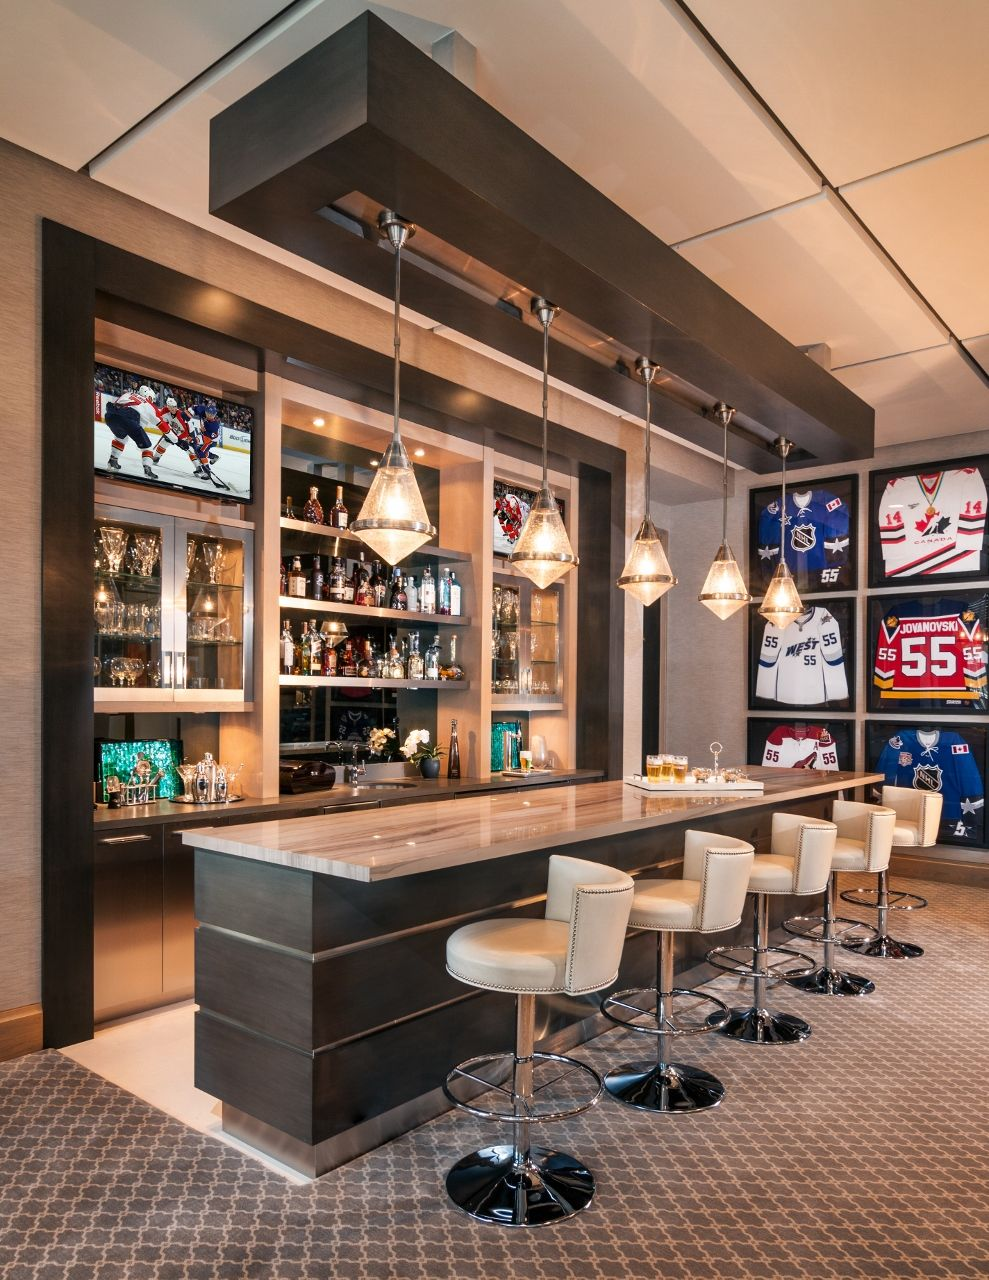 15 Game Room Ideas You Did Not Know About + Pros & Cons | Game rooms ...